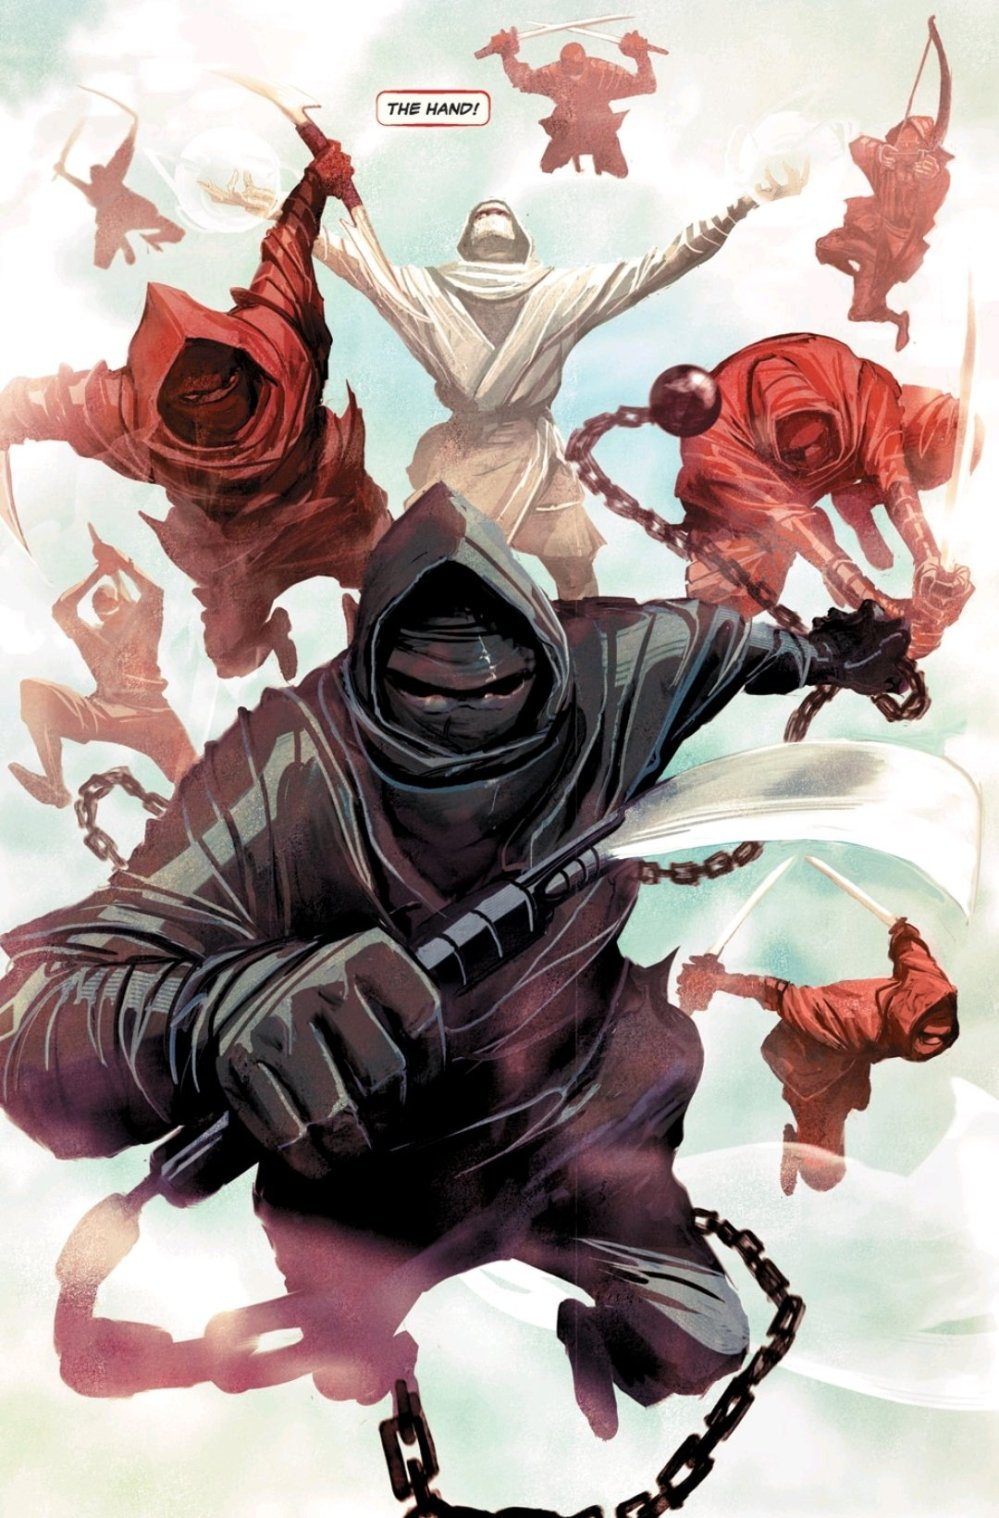 The Hand attacking Elektra